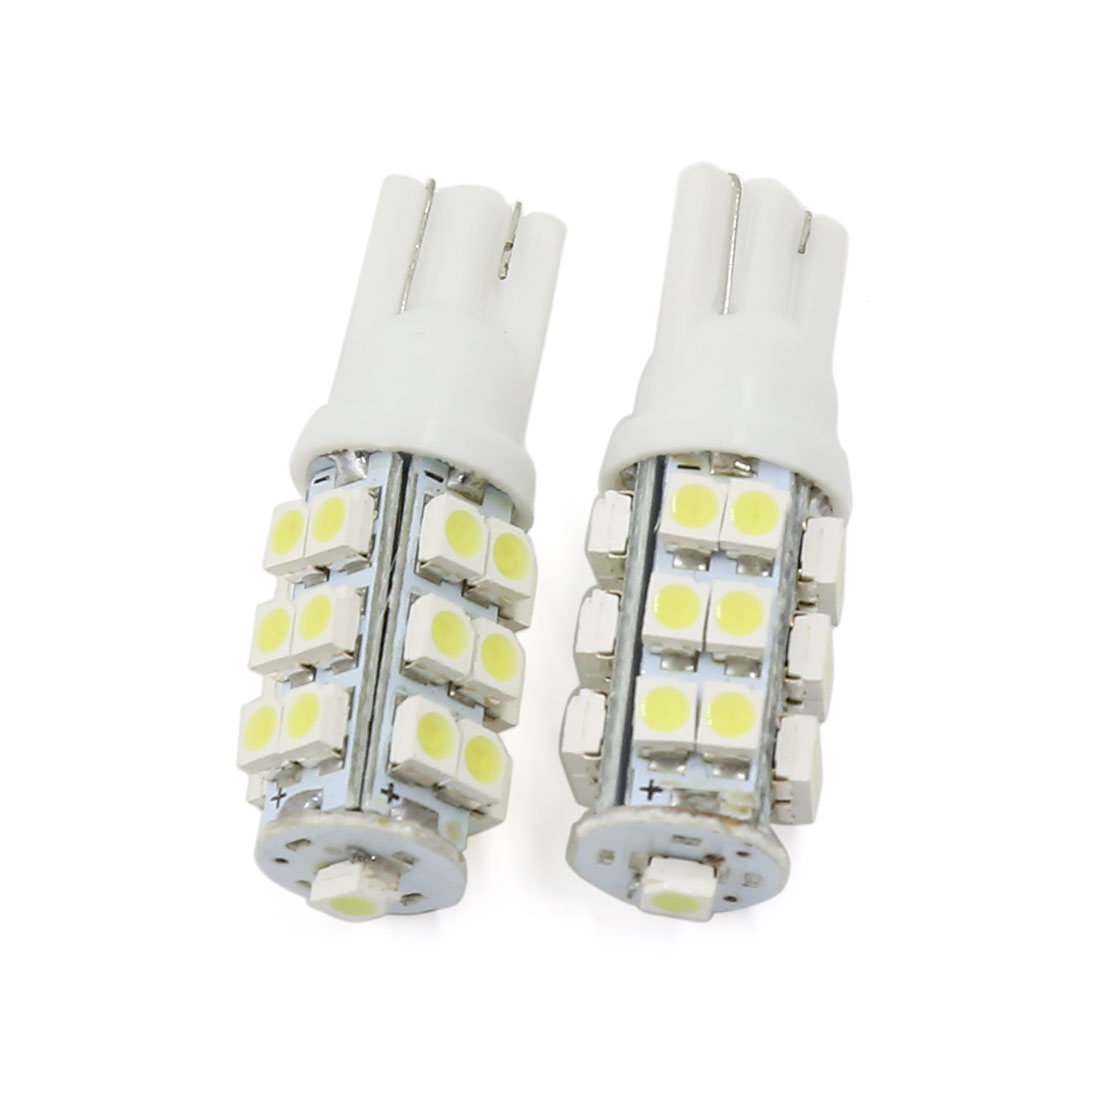 2 Pcs T10 25 SMD 1210 LED Super Bright White Wedge Side Light Bulb Lamp DC 12V